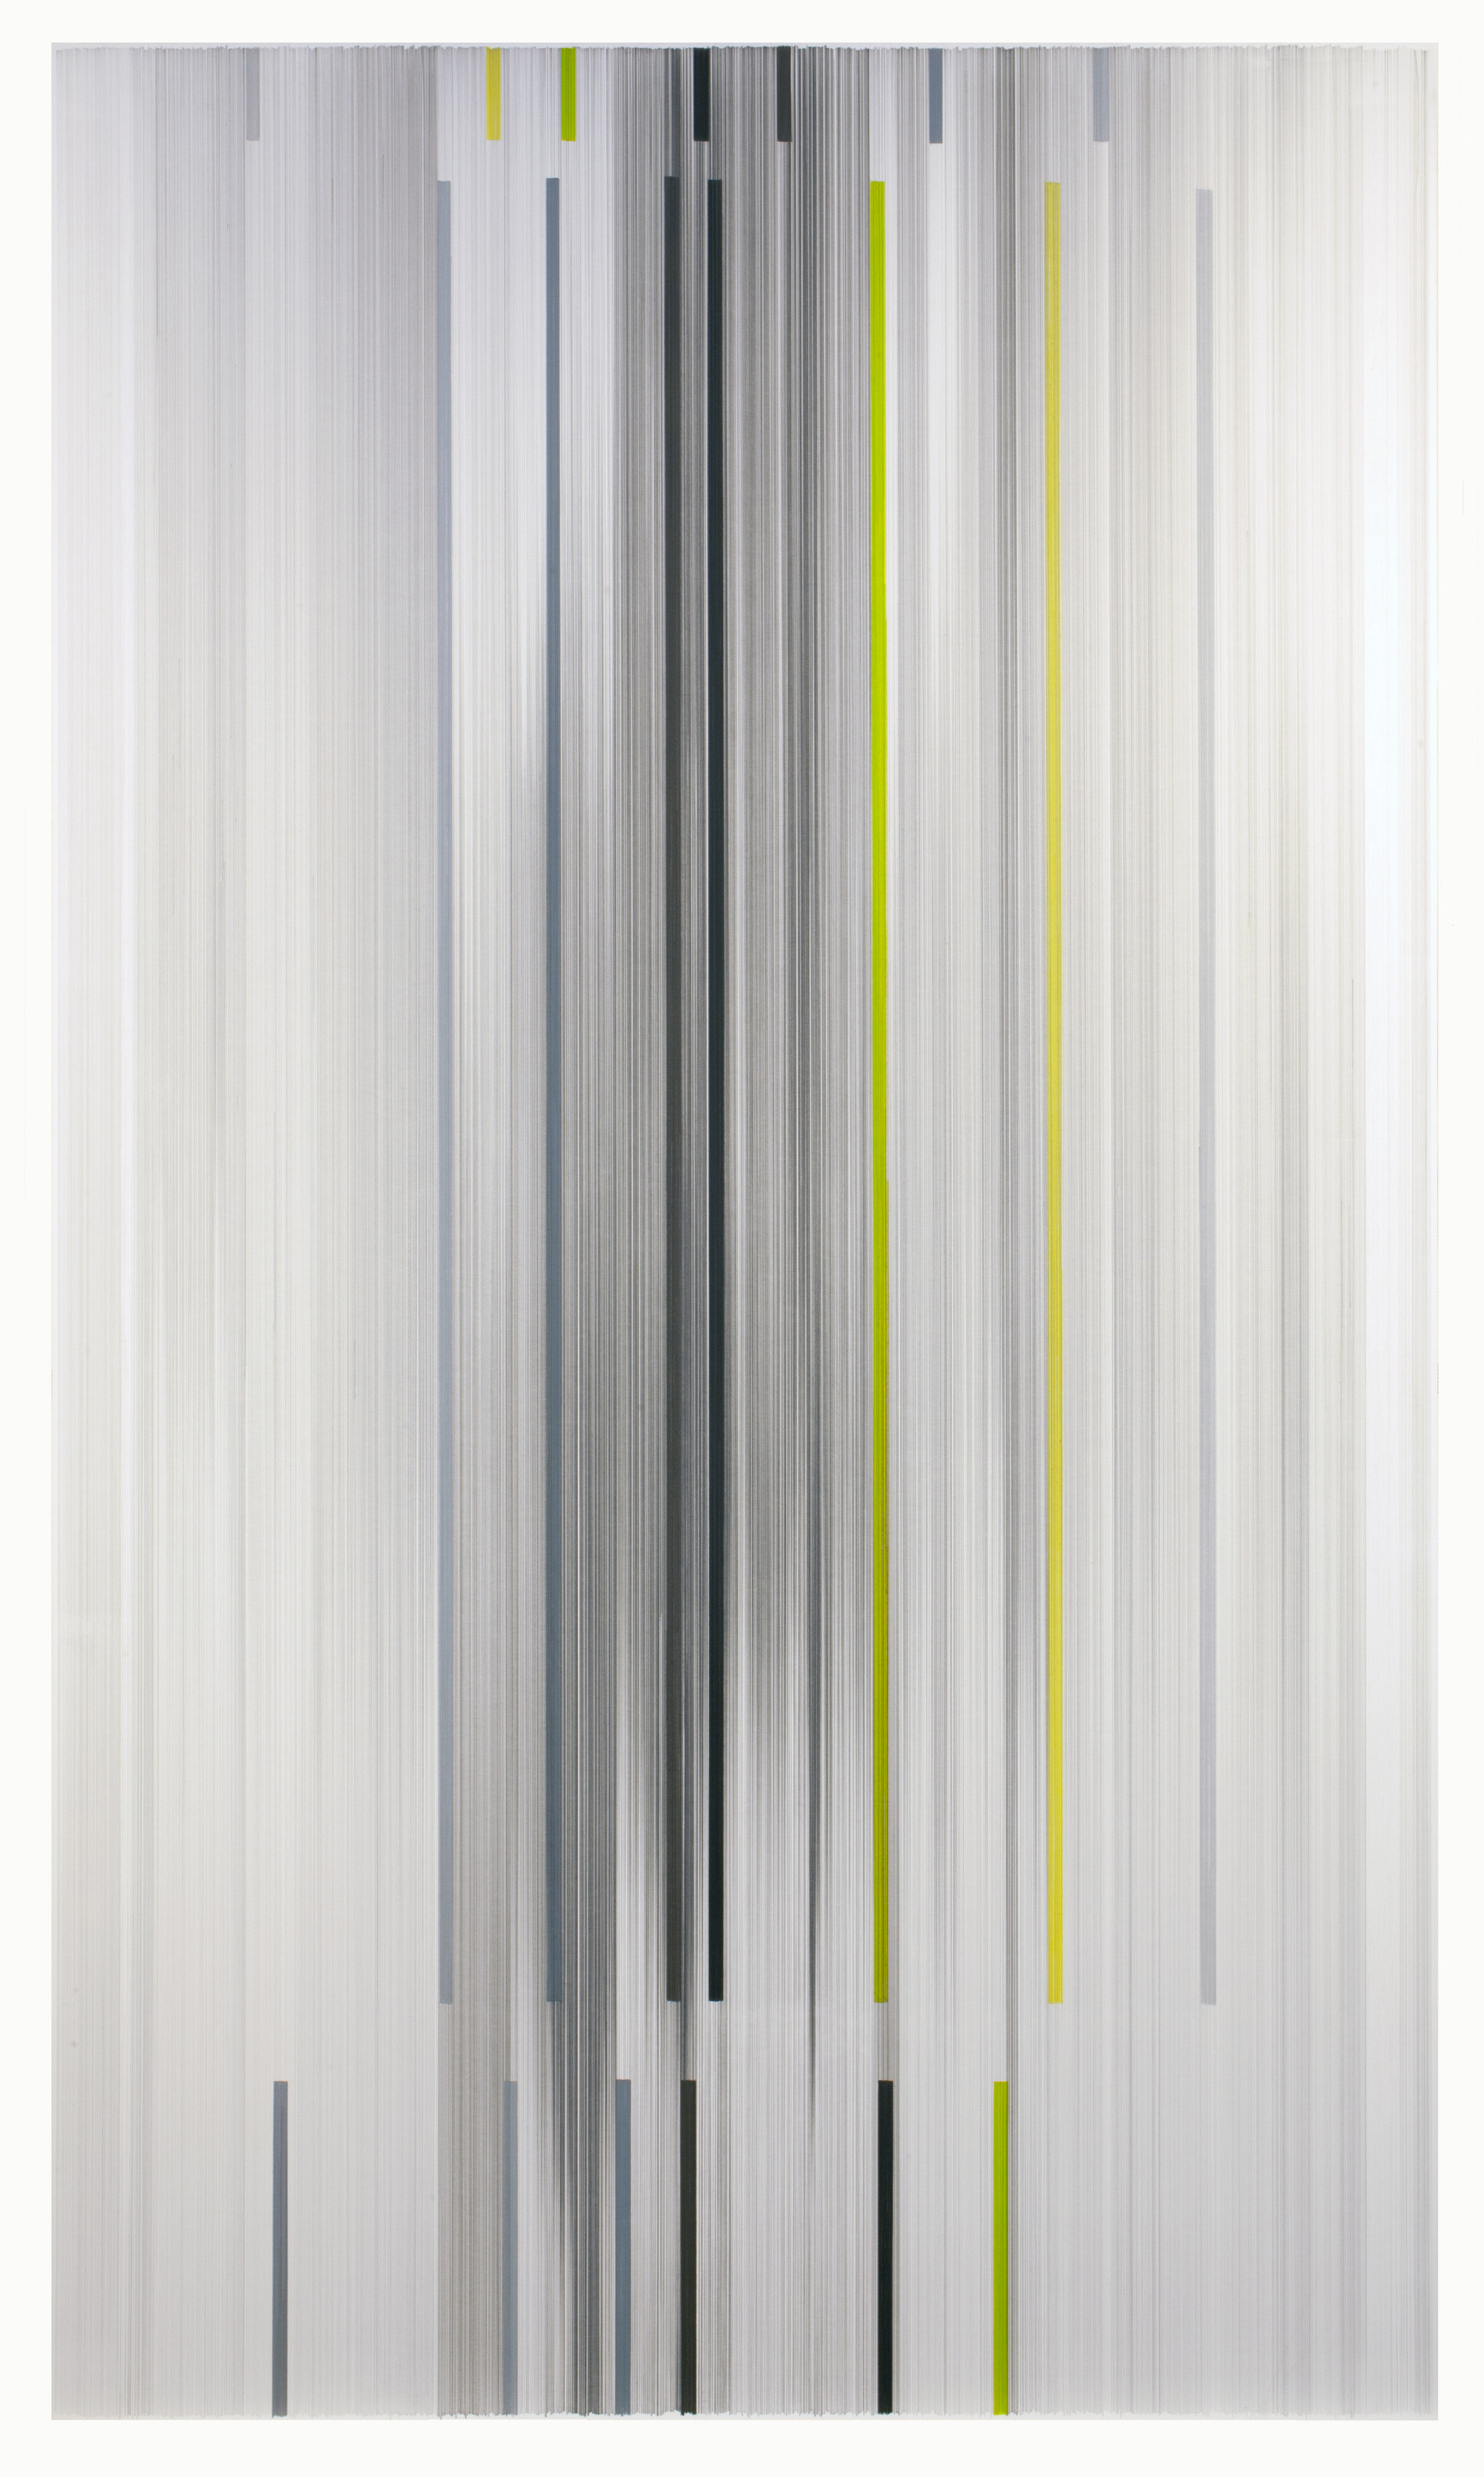 Anne Lindberg ,  future construct , 2019 graphite and colored pencil on mat board, 102 by 59 inches